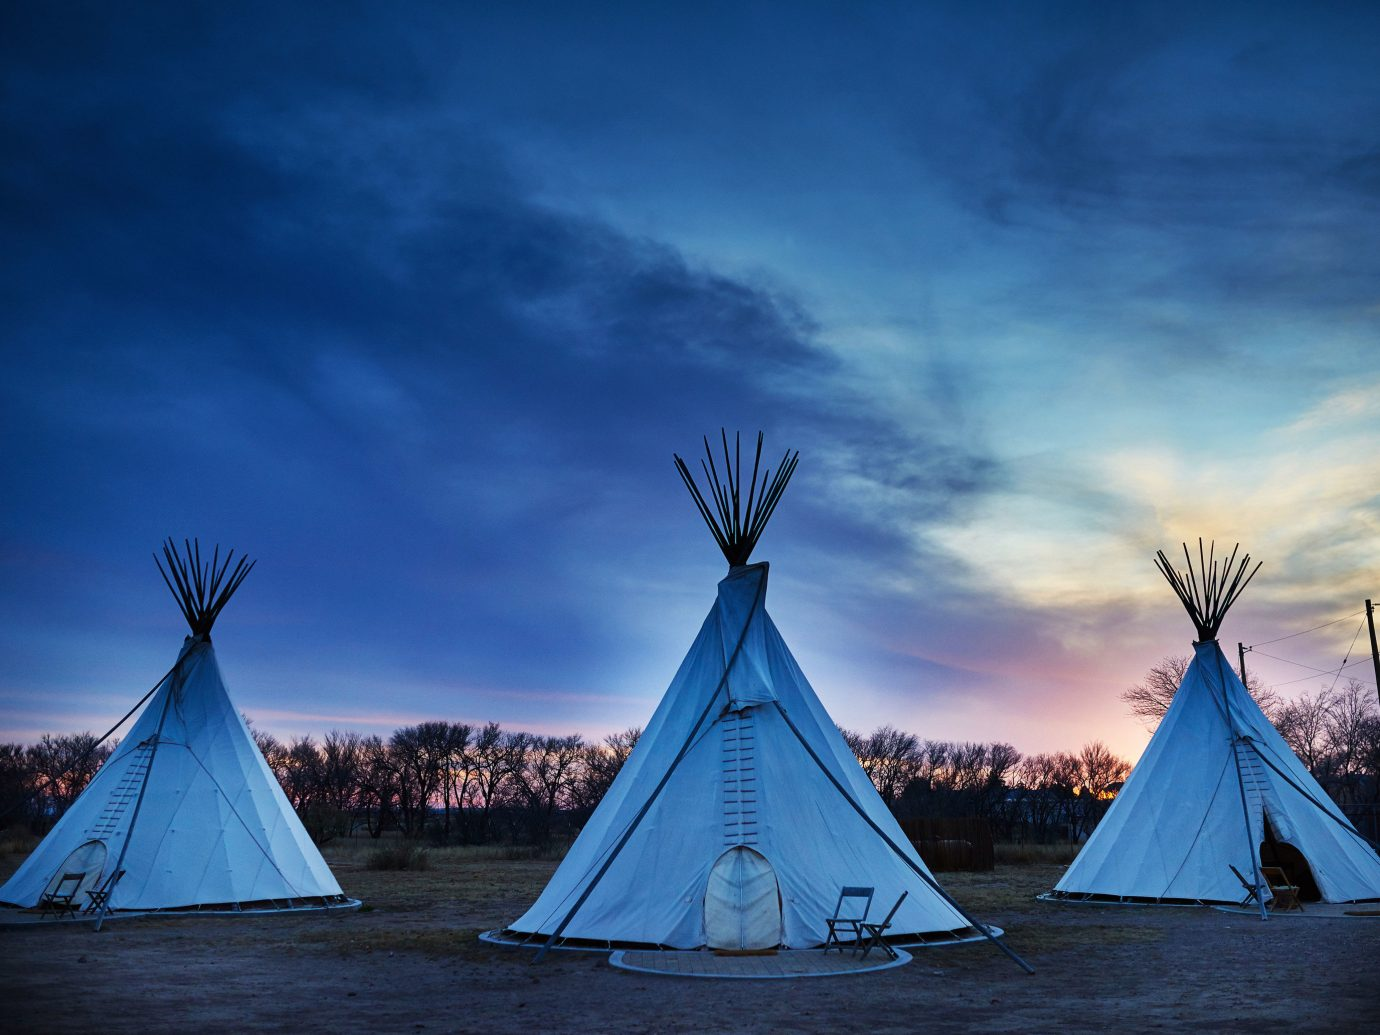 Glamping Luxury Travel Outdoors + Adventure tepee sky outdoor water building blue cloud light Sea night horizon evening Winter morning dusk sunlight Ocean reflection ice lit Sunset several